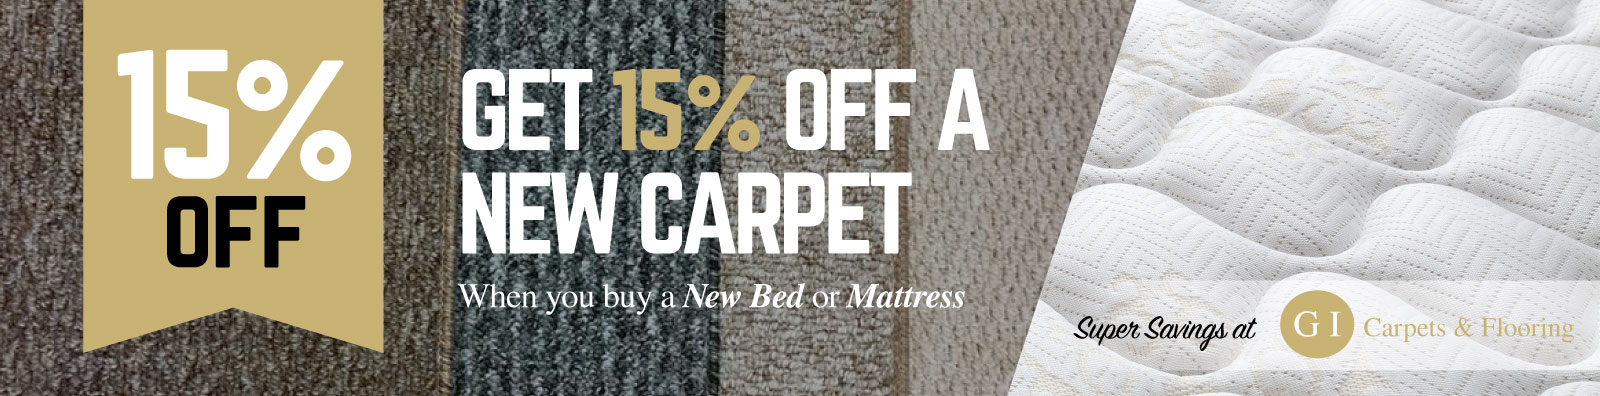 GI-Carpets-Llanelli-Carpets-March-Promo-Banner